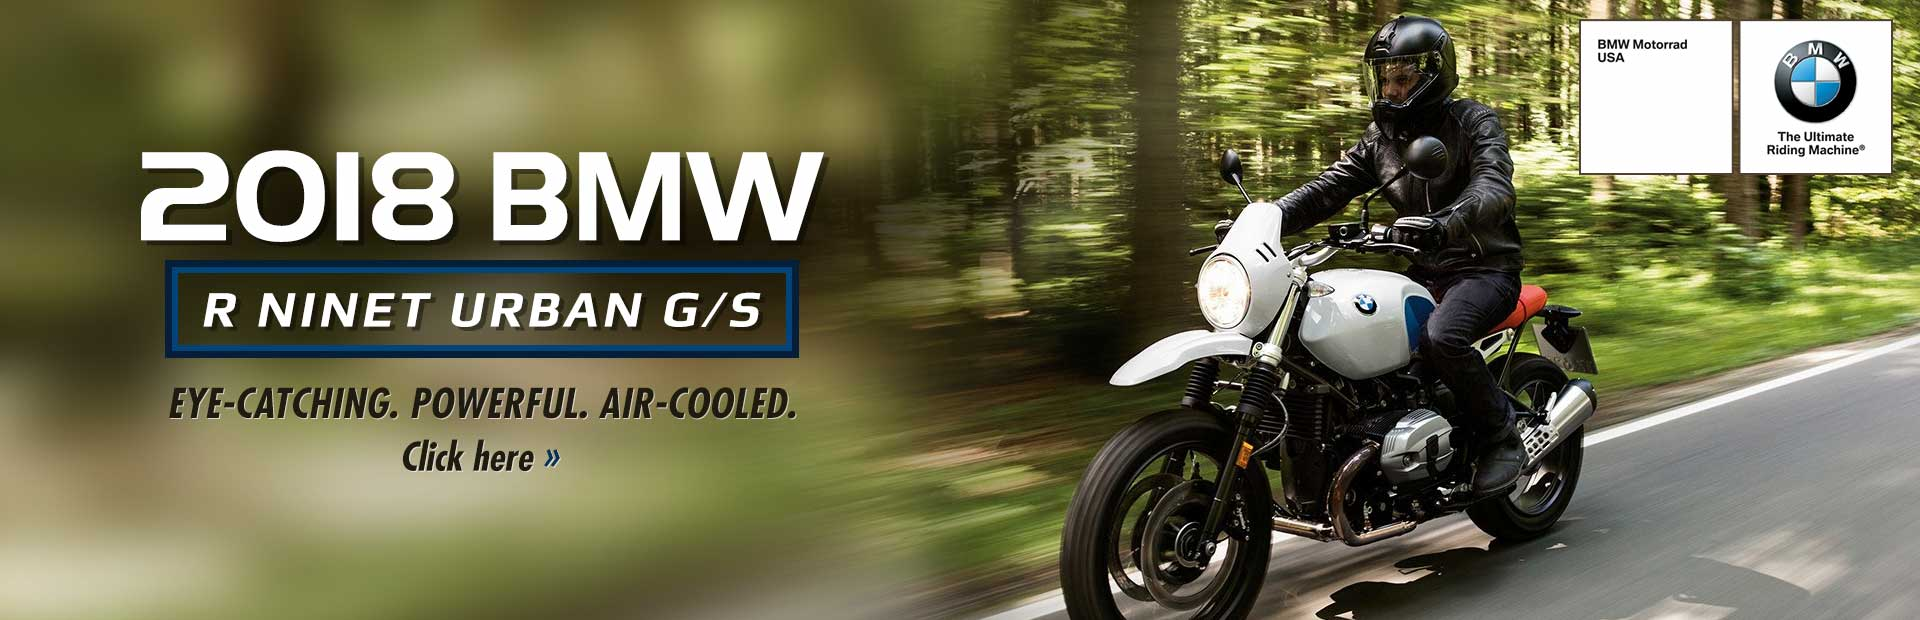 2018 BMW R nineT Urban G/S: Click here for details!